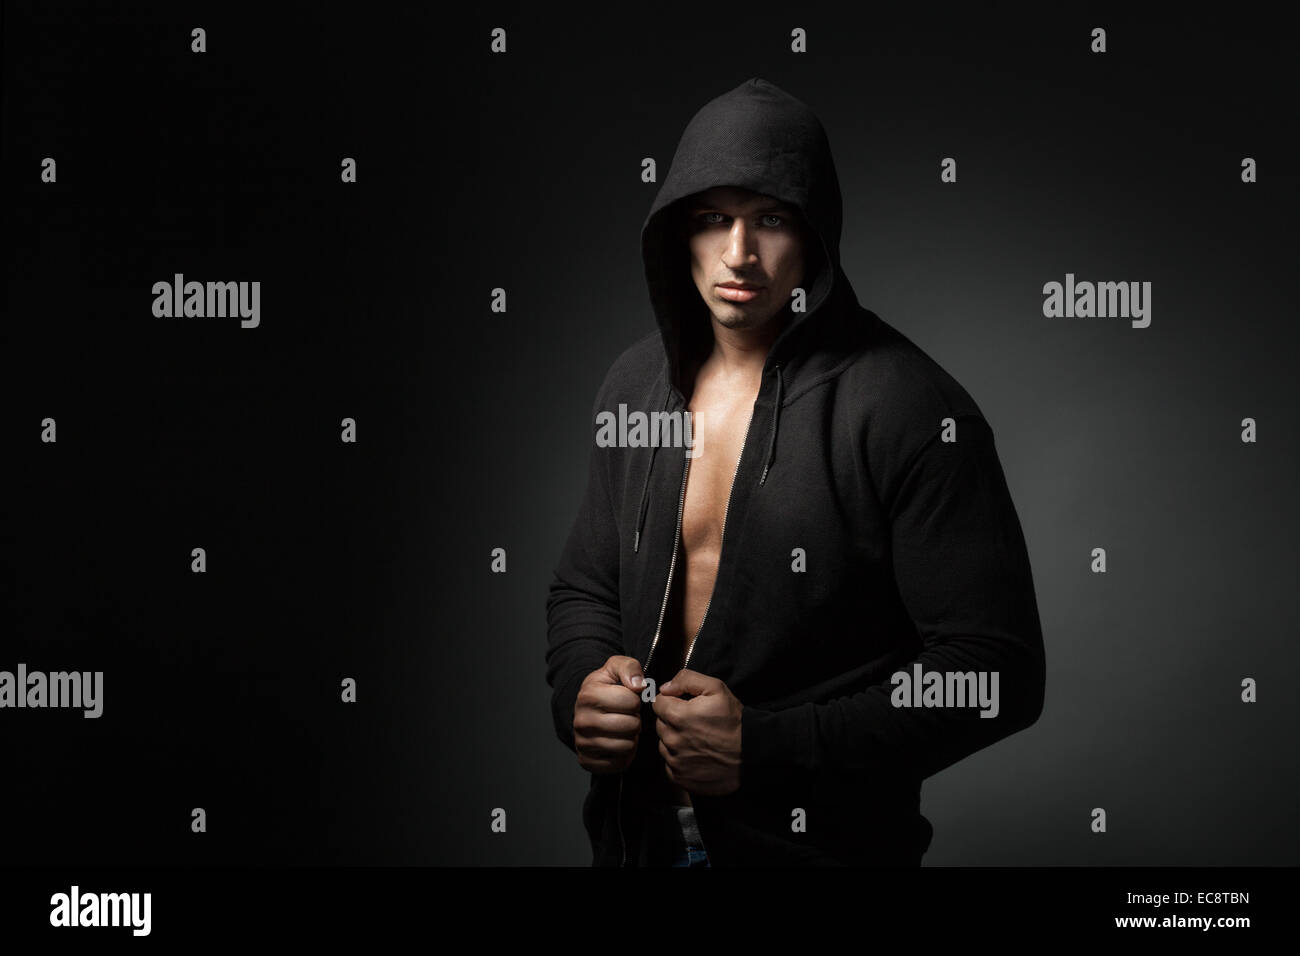 strong man wearing hoody isolated on black background with copyspace - Stock Image